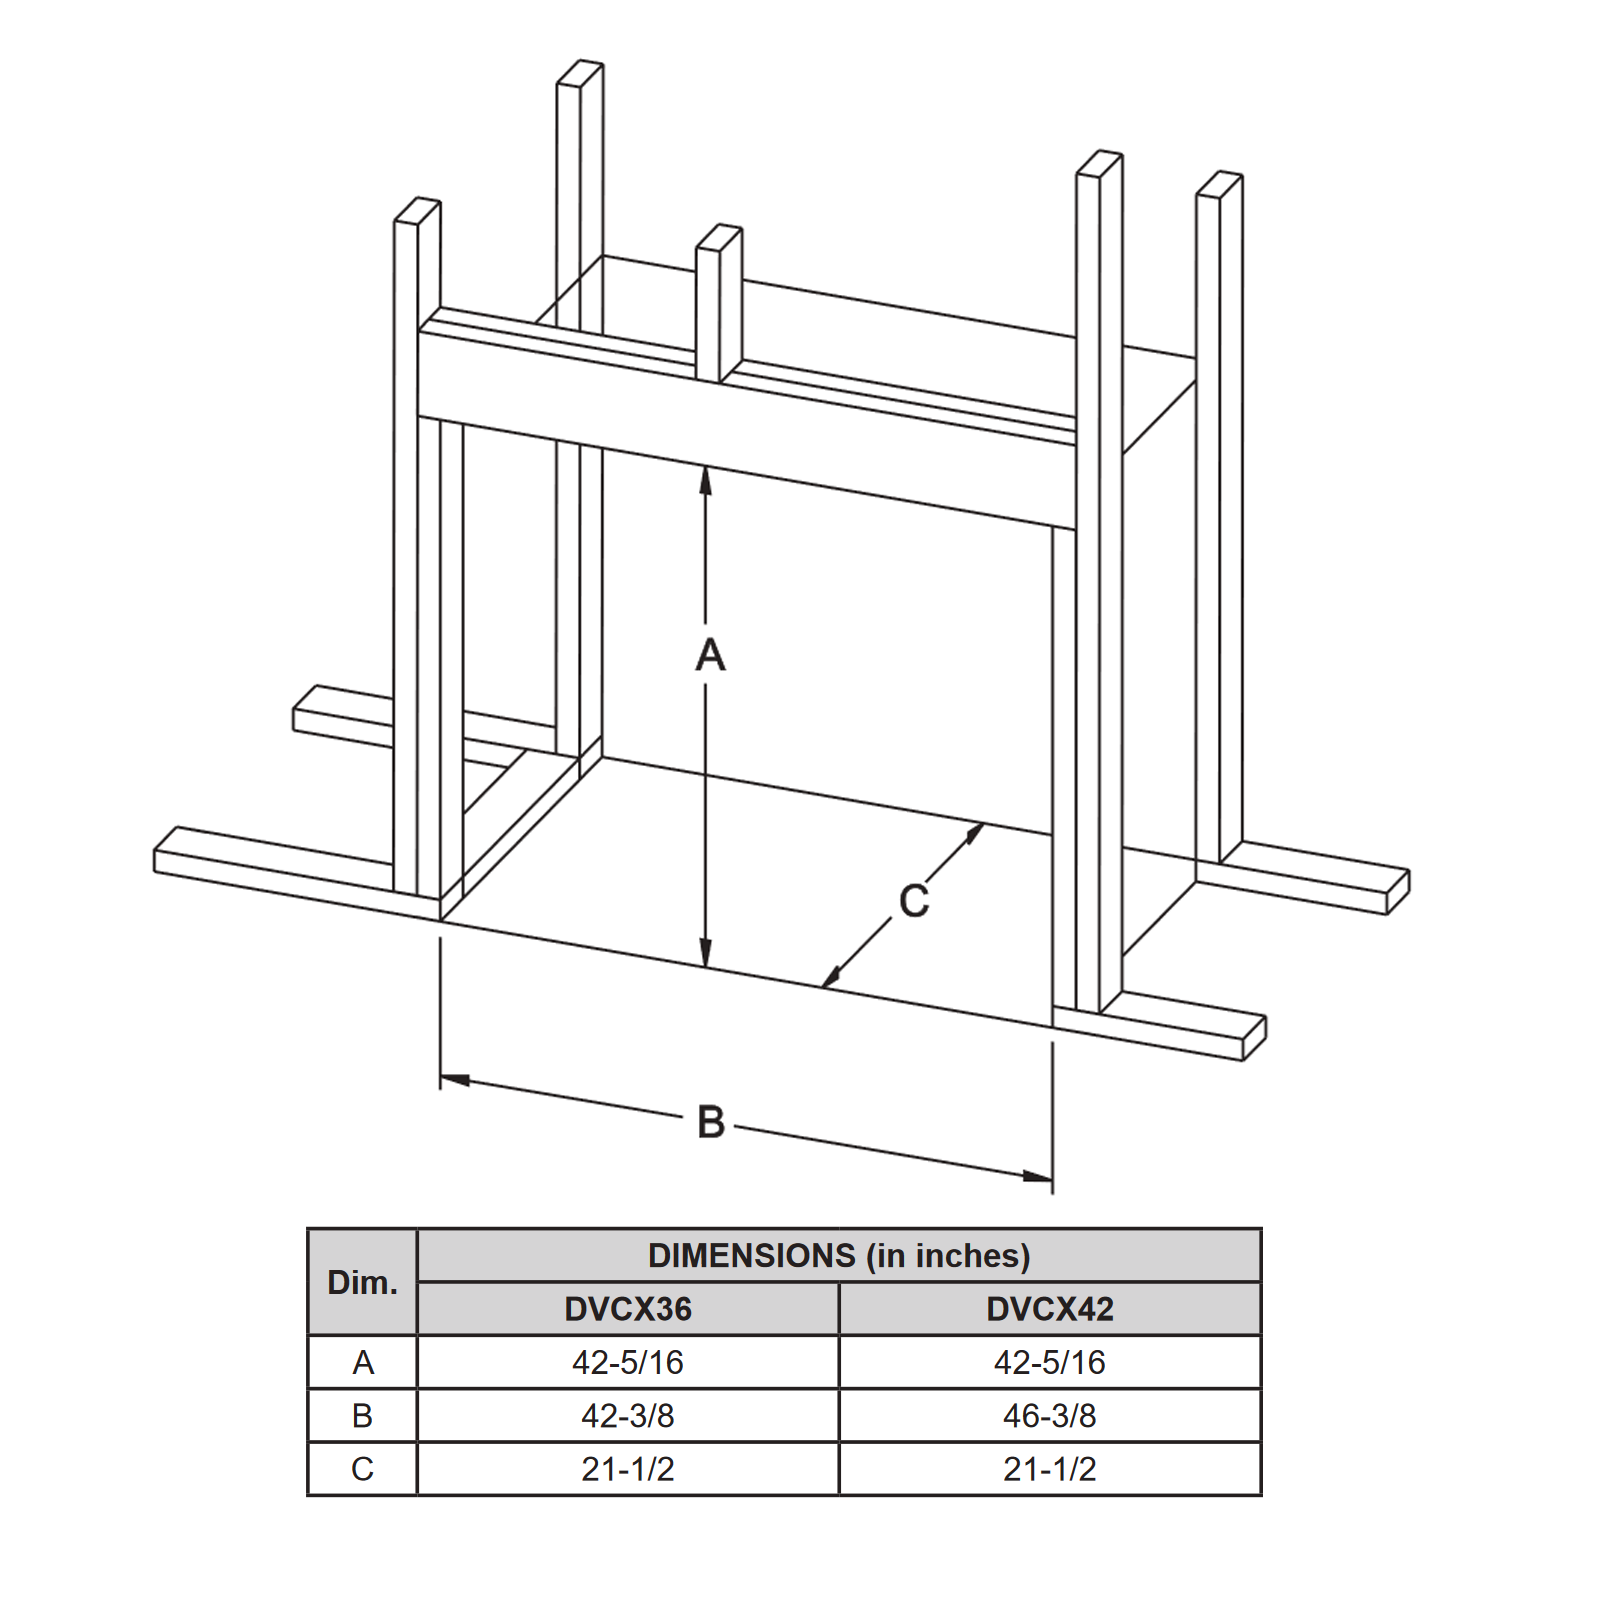 DVCX36 Technical Drawing 2